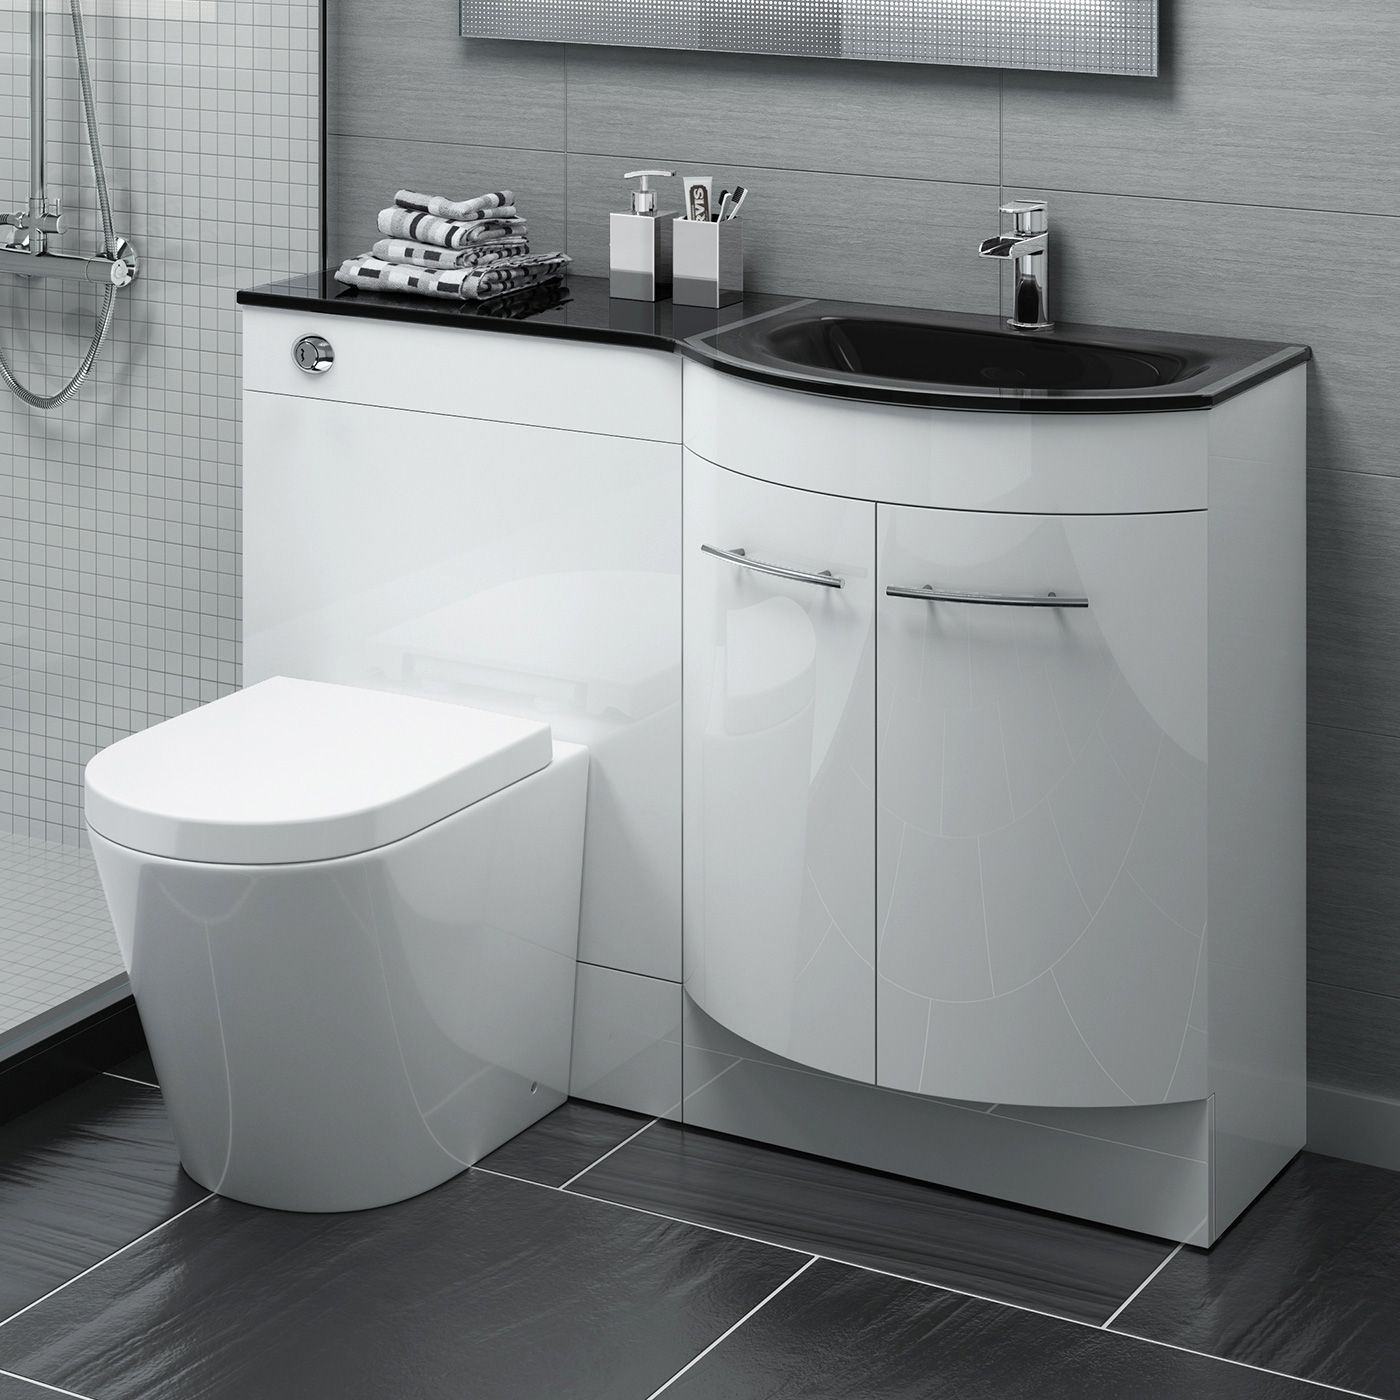 1200mm Alexis Gloss White Combined Vanity Unit Black Glass Basin Lyon Pan Bathroom Vanity Units Vanity Units Trendy Bathroom